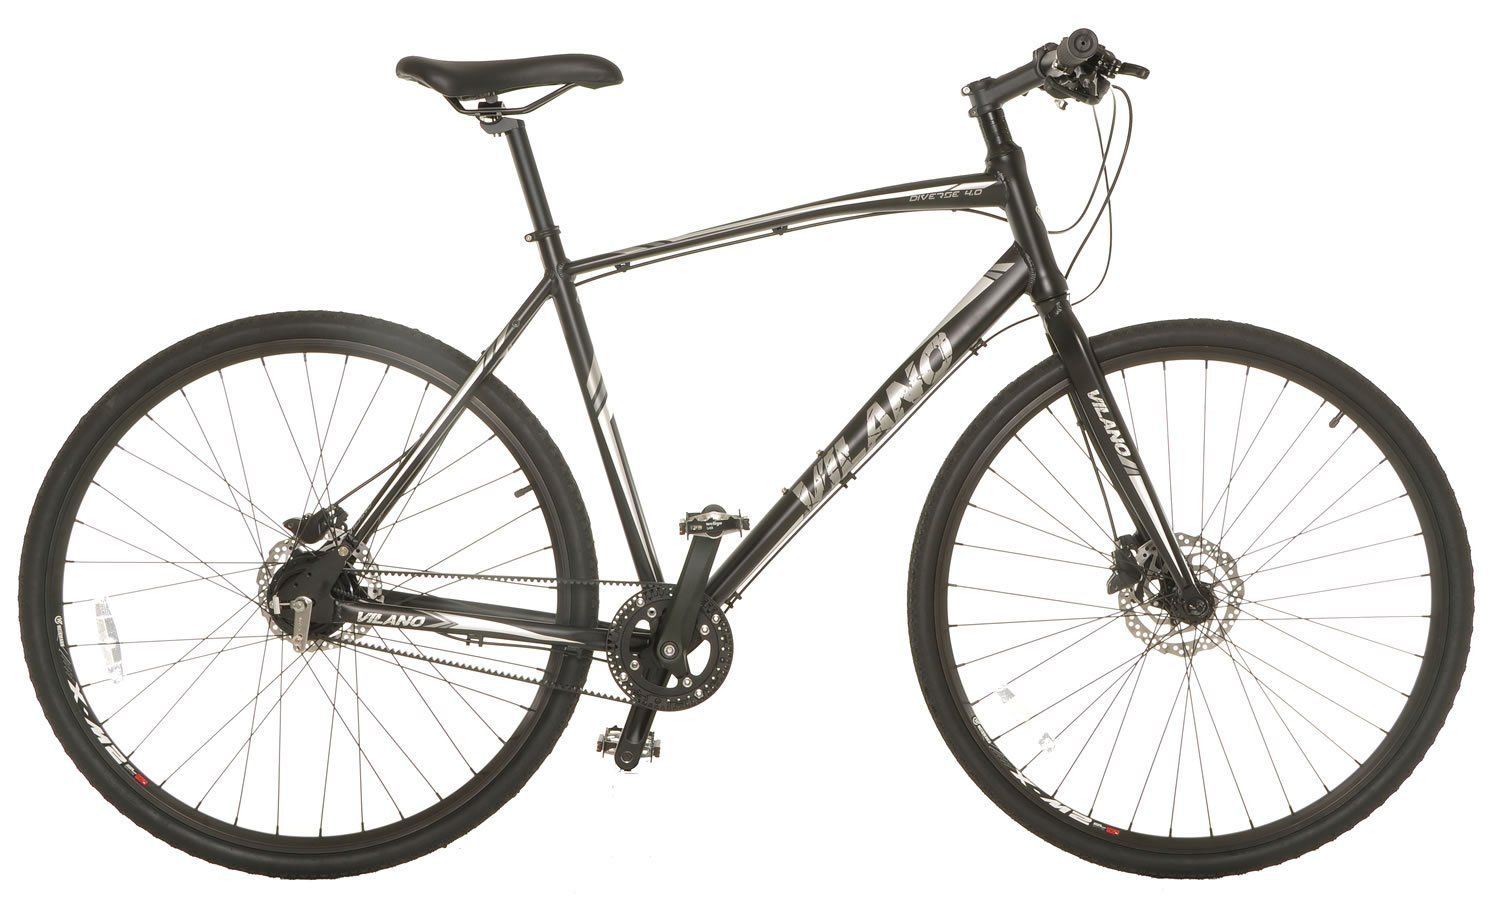 Best Hybrid Bikes Under 1000 Dollars For 2020 Check Our Top